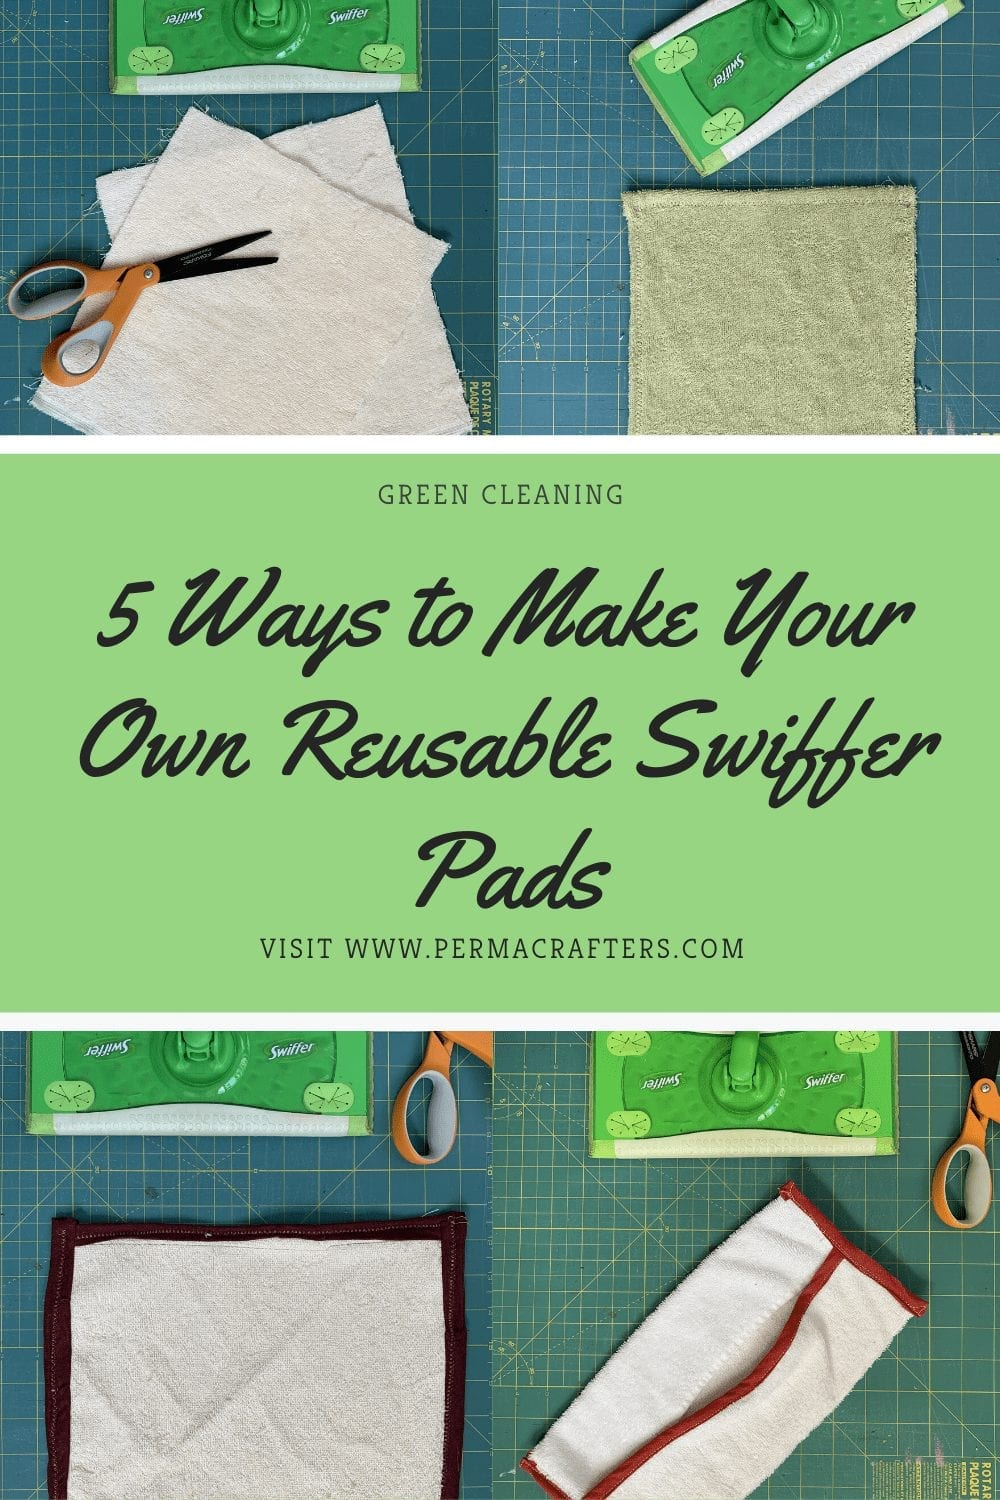 5 Ways to Make Your Own Reusable Swiffer Pads